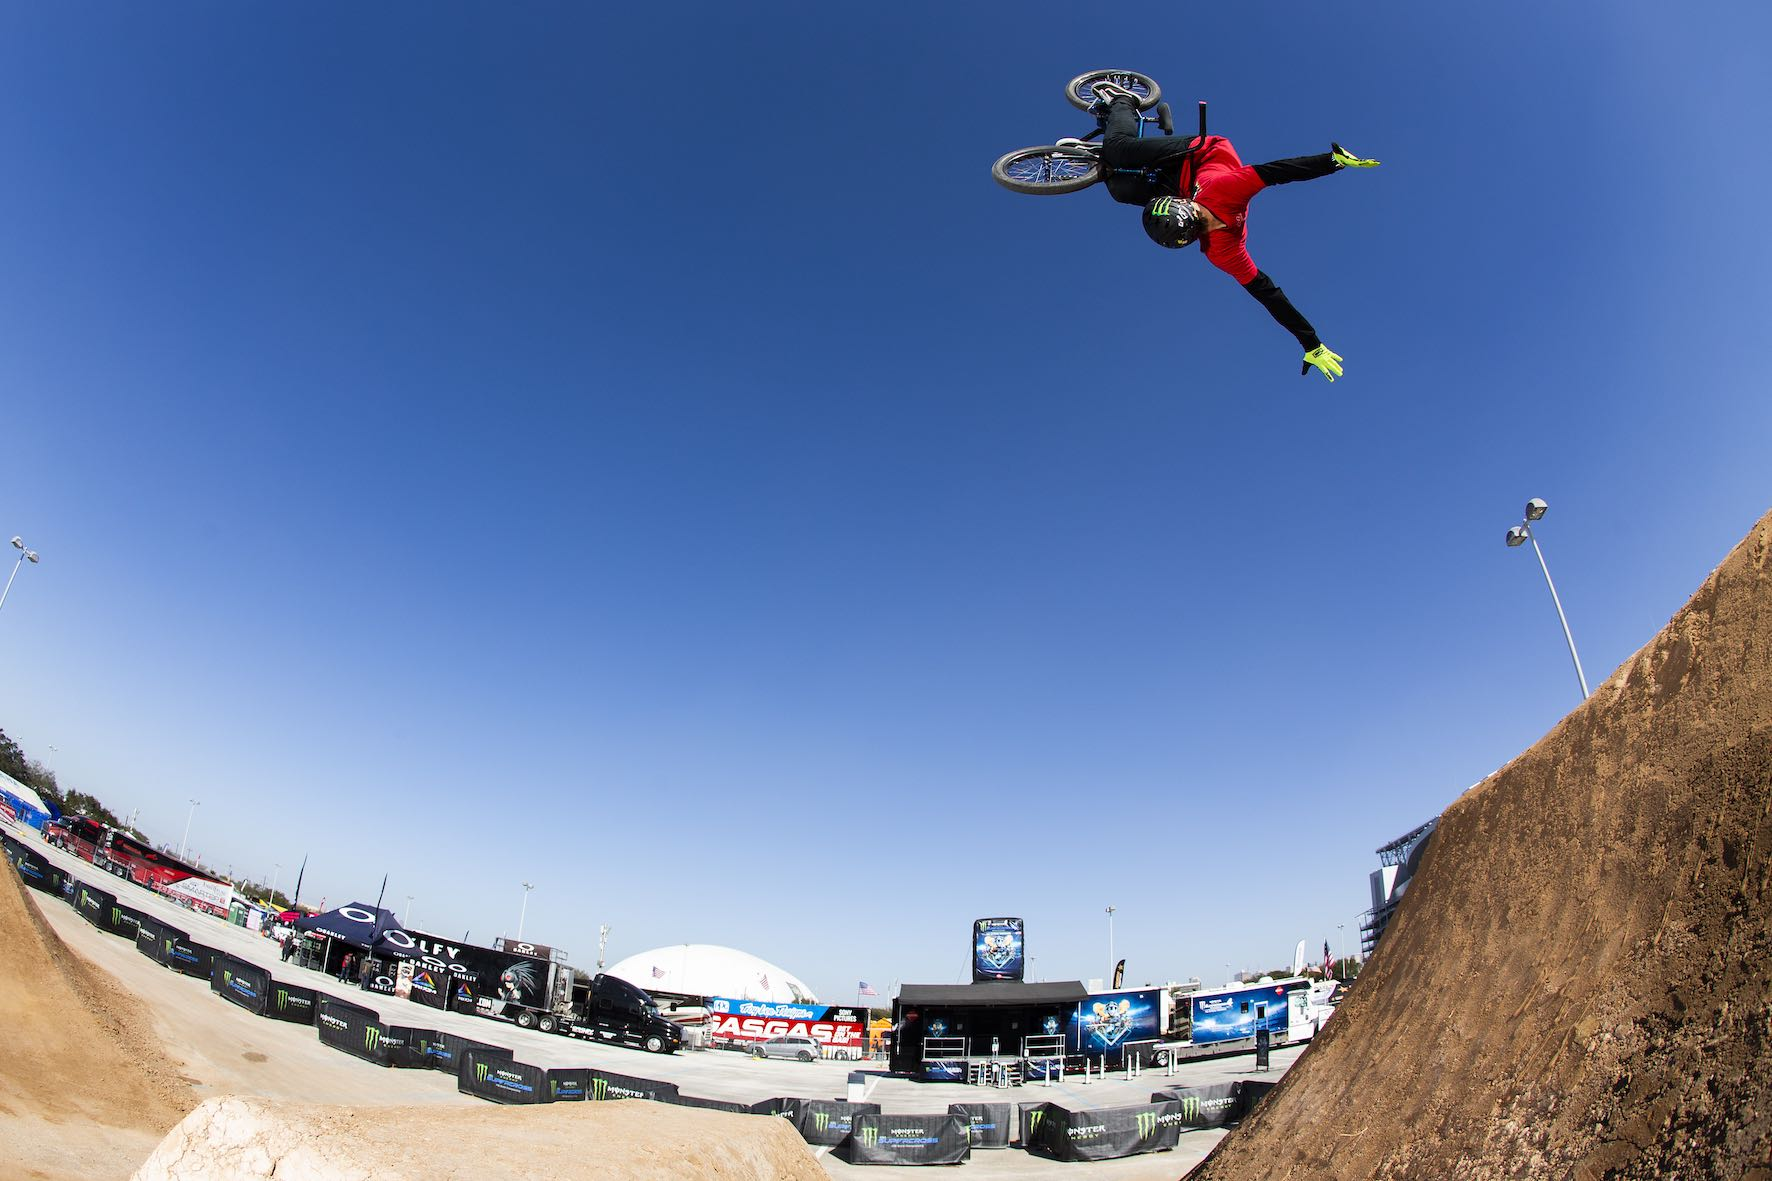 Andy Buckworth riding in the Monster Energy BMX Triple Challenge